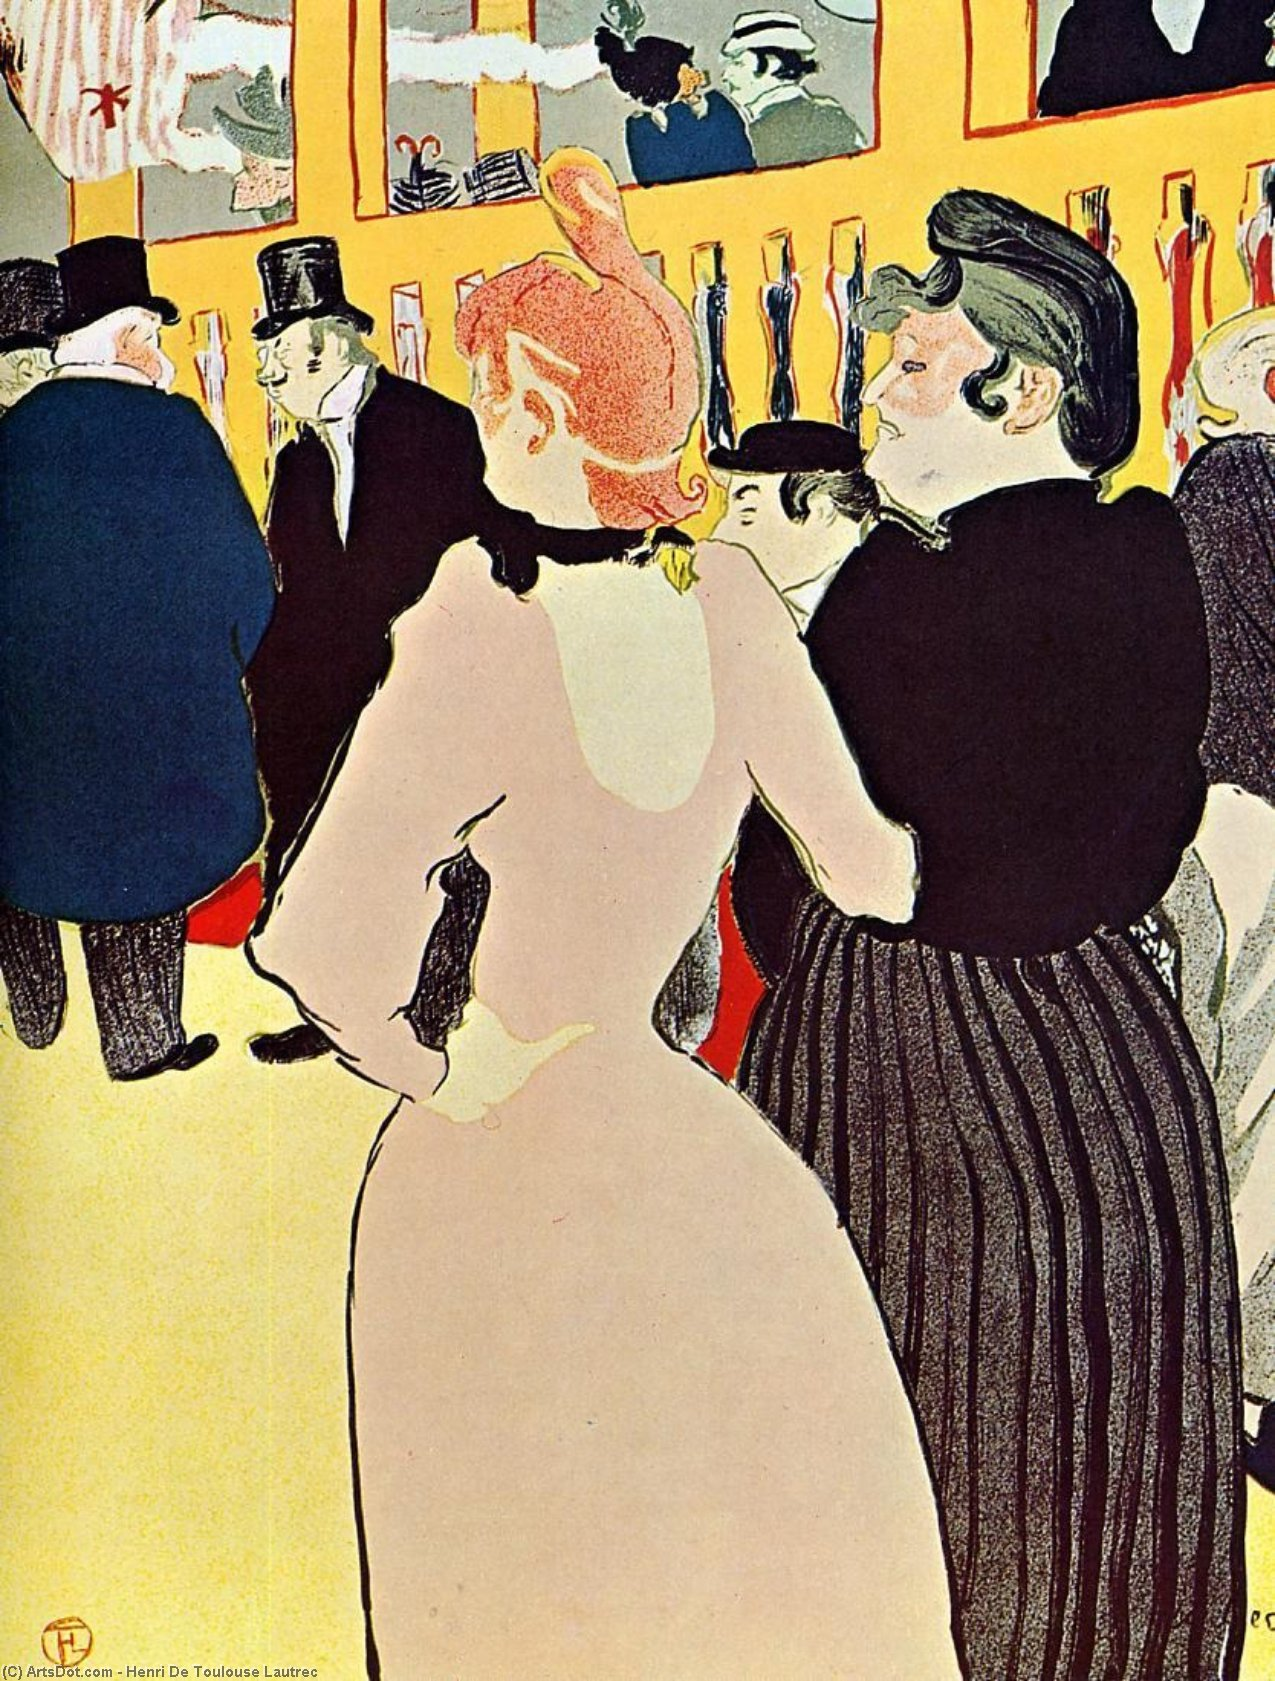 No moulin rouge - la goulue com ela Irmã por Henri De Toulouse Lautrec (1864-1901, France)